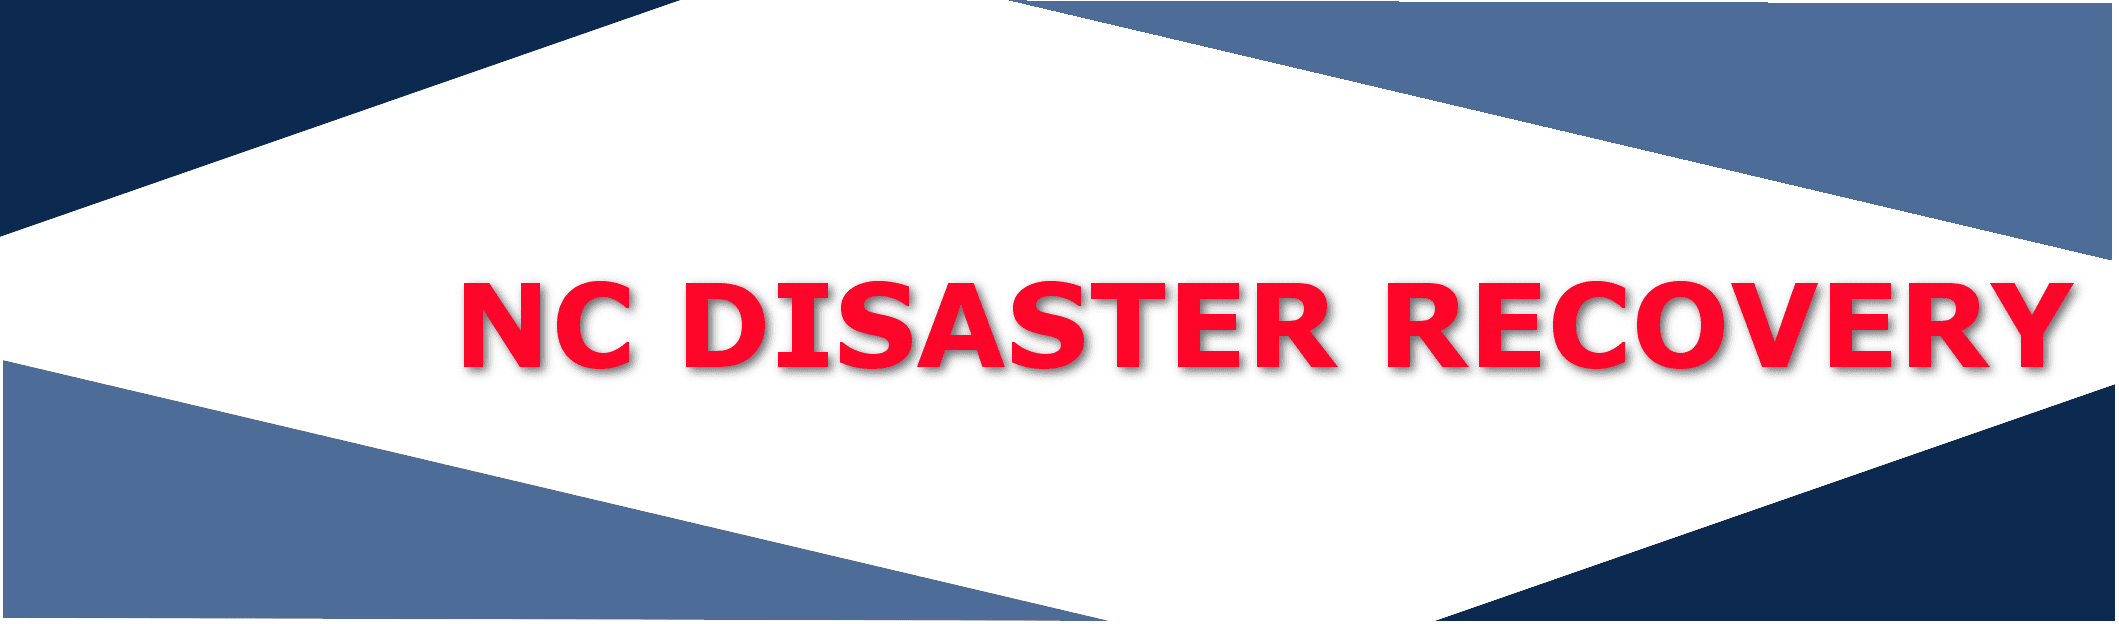 official county emergency disaster help in NC